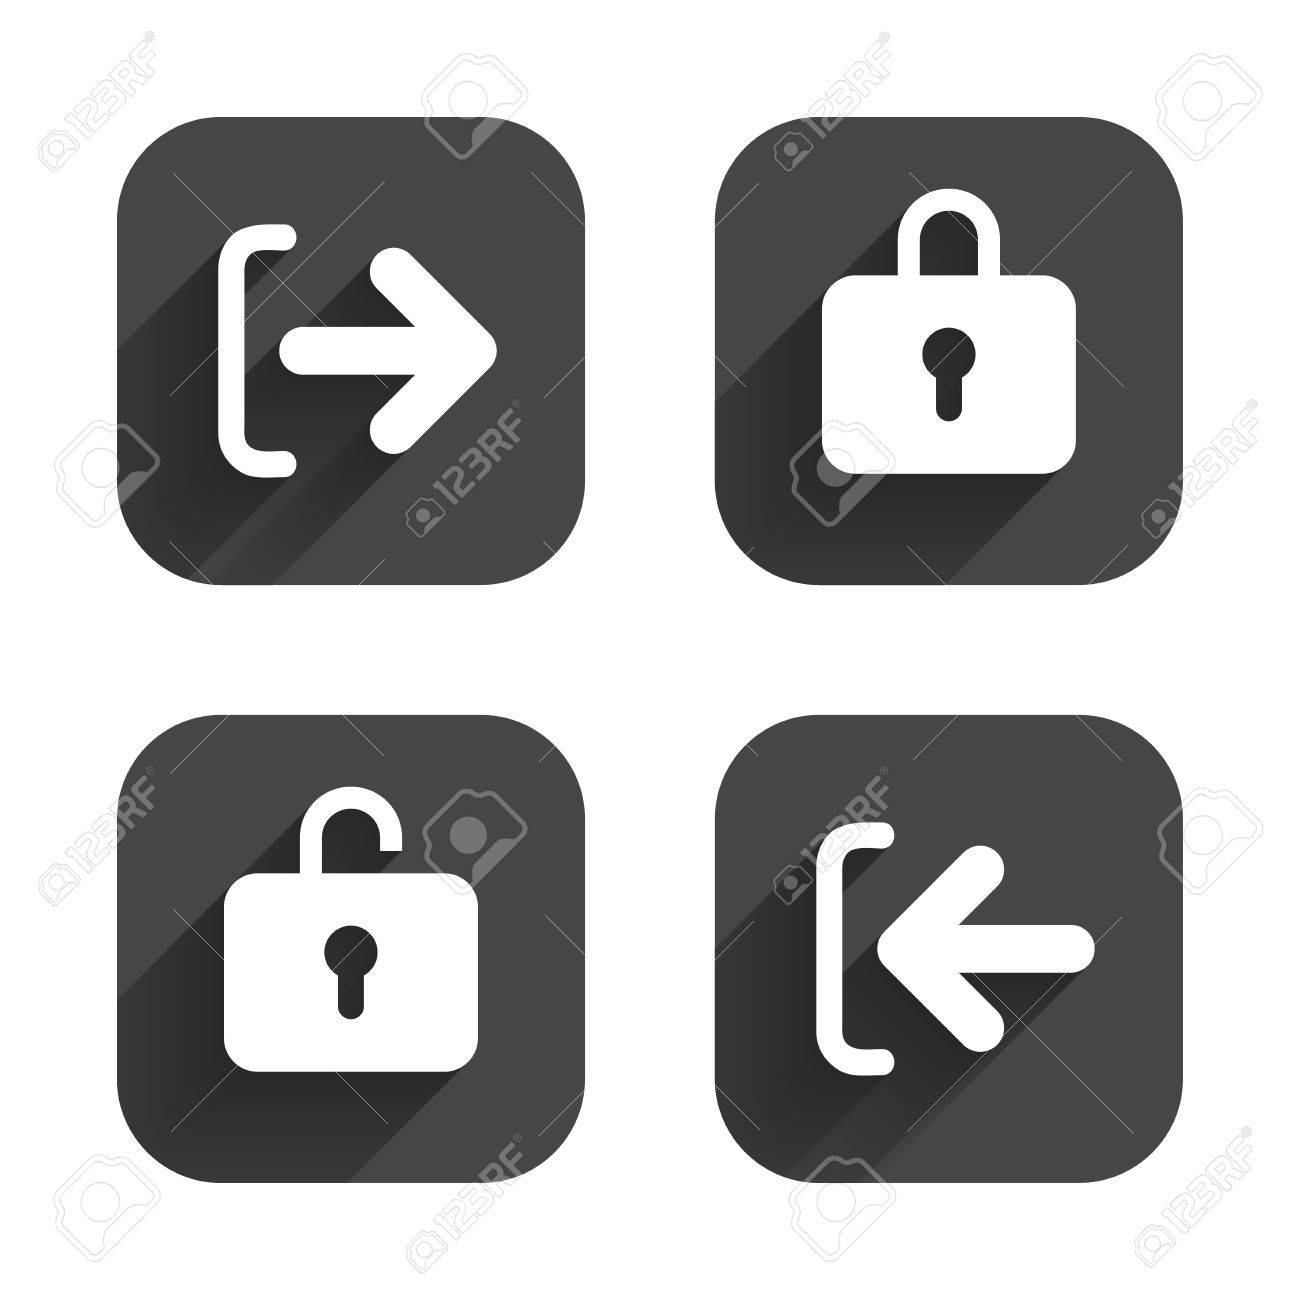 Login and Logout icons  Sign in or Sign out symbols  Lock icon